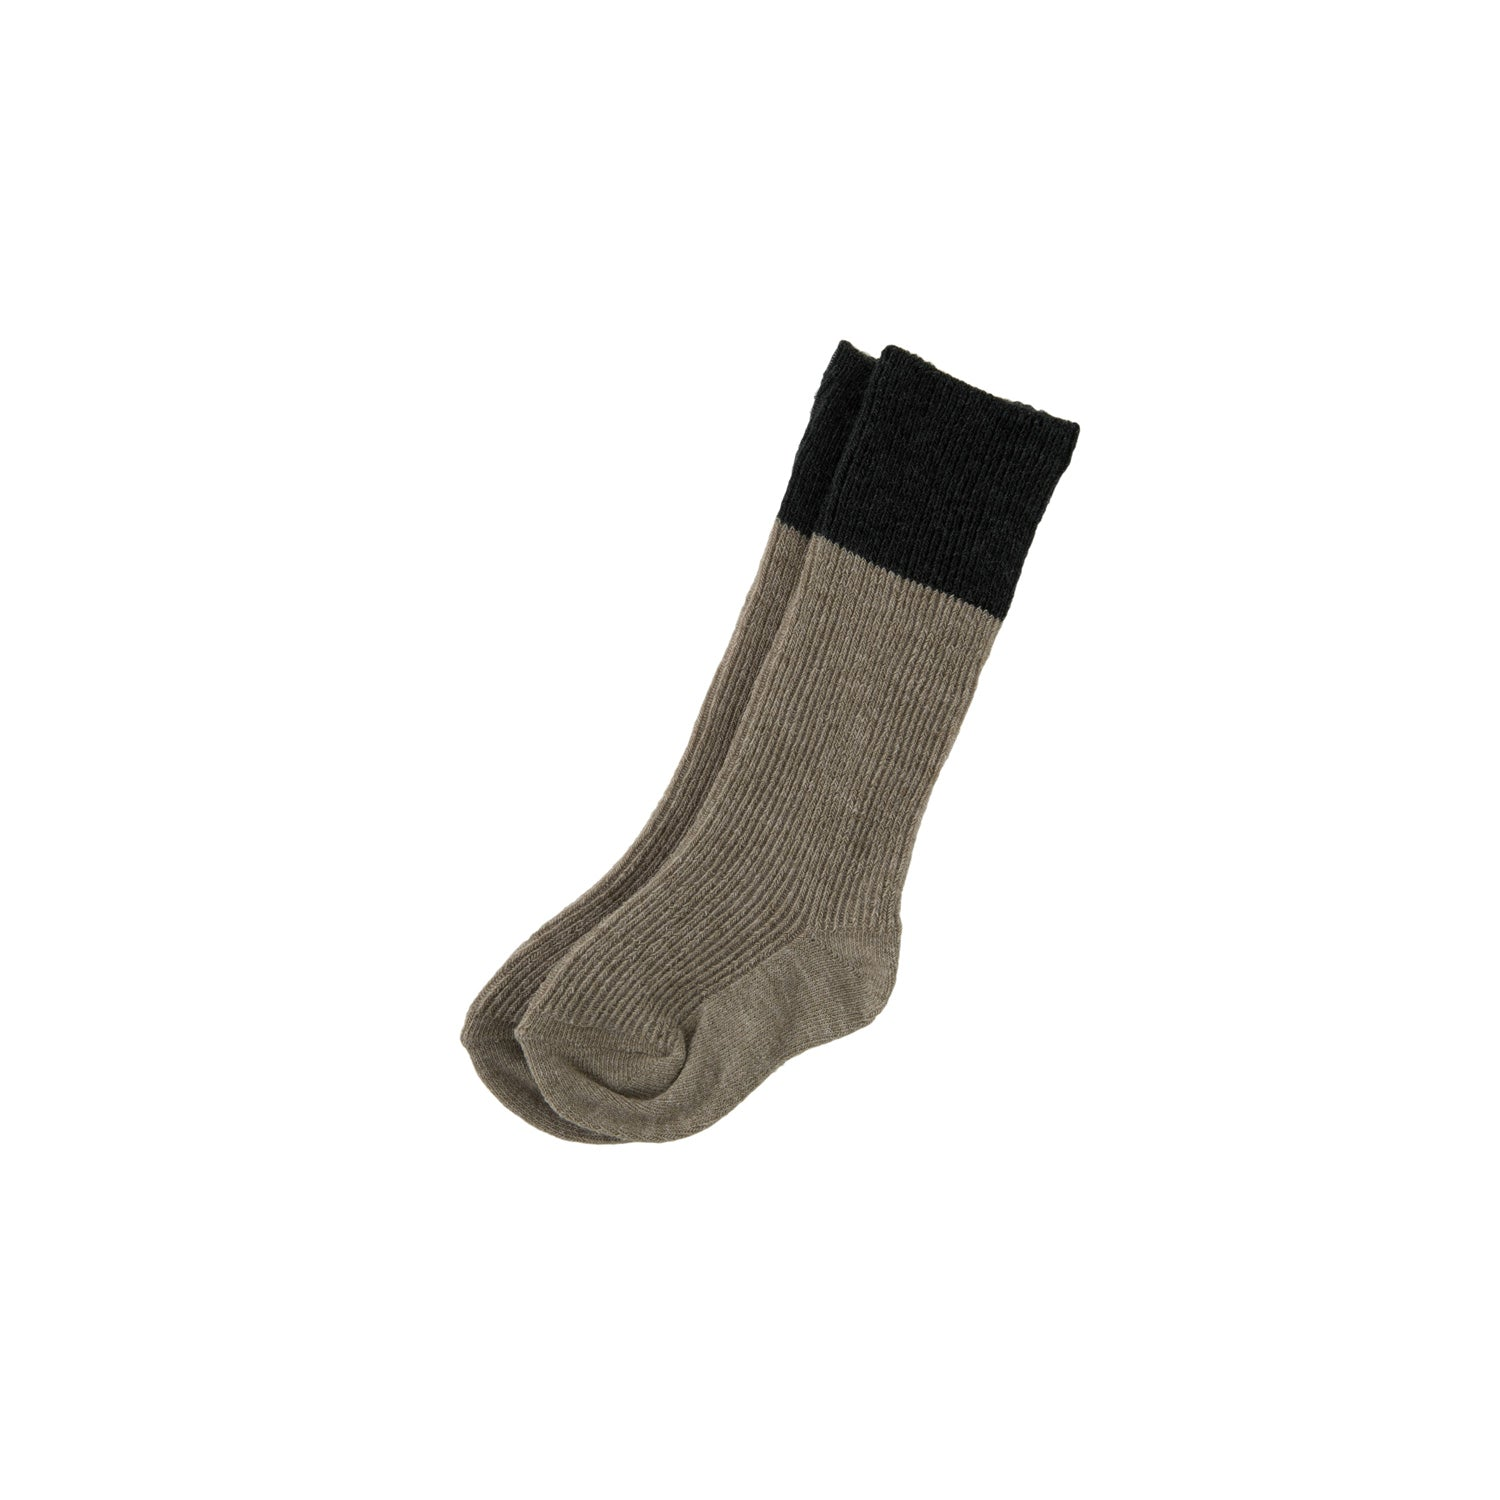 Bene Bene Beige Two Tone Ribbed Socks